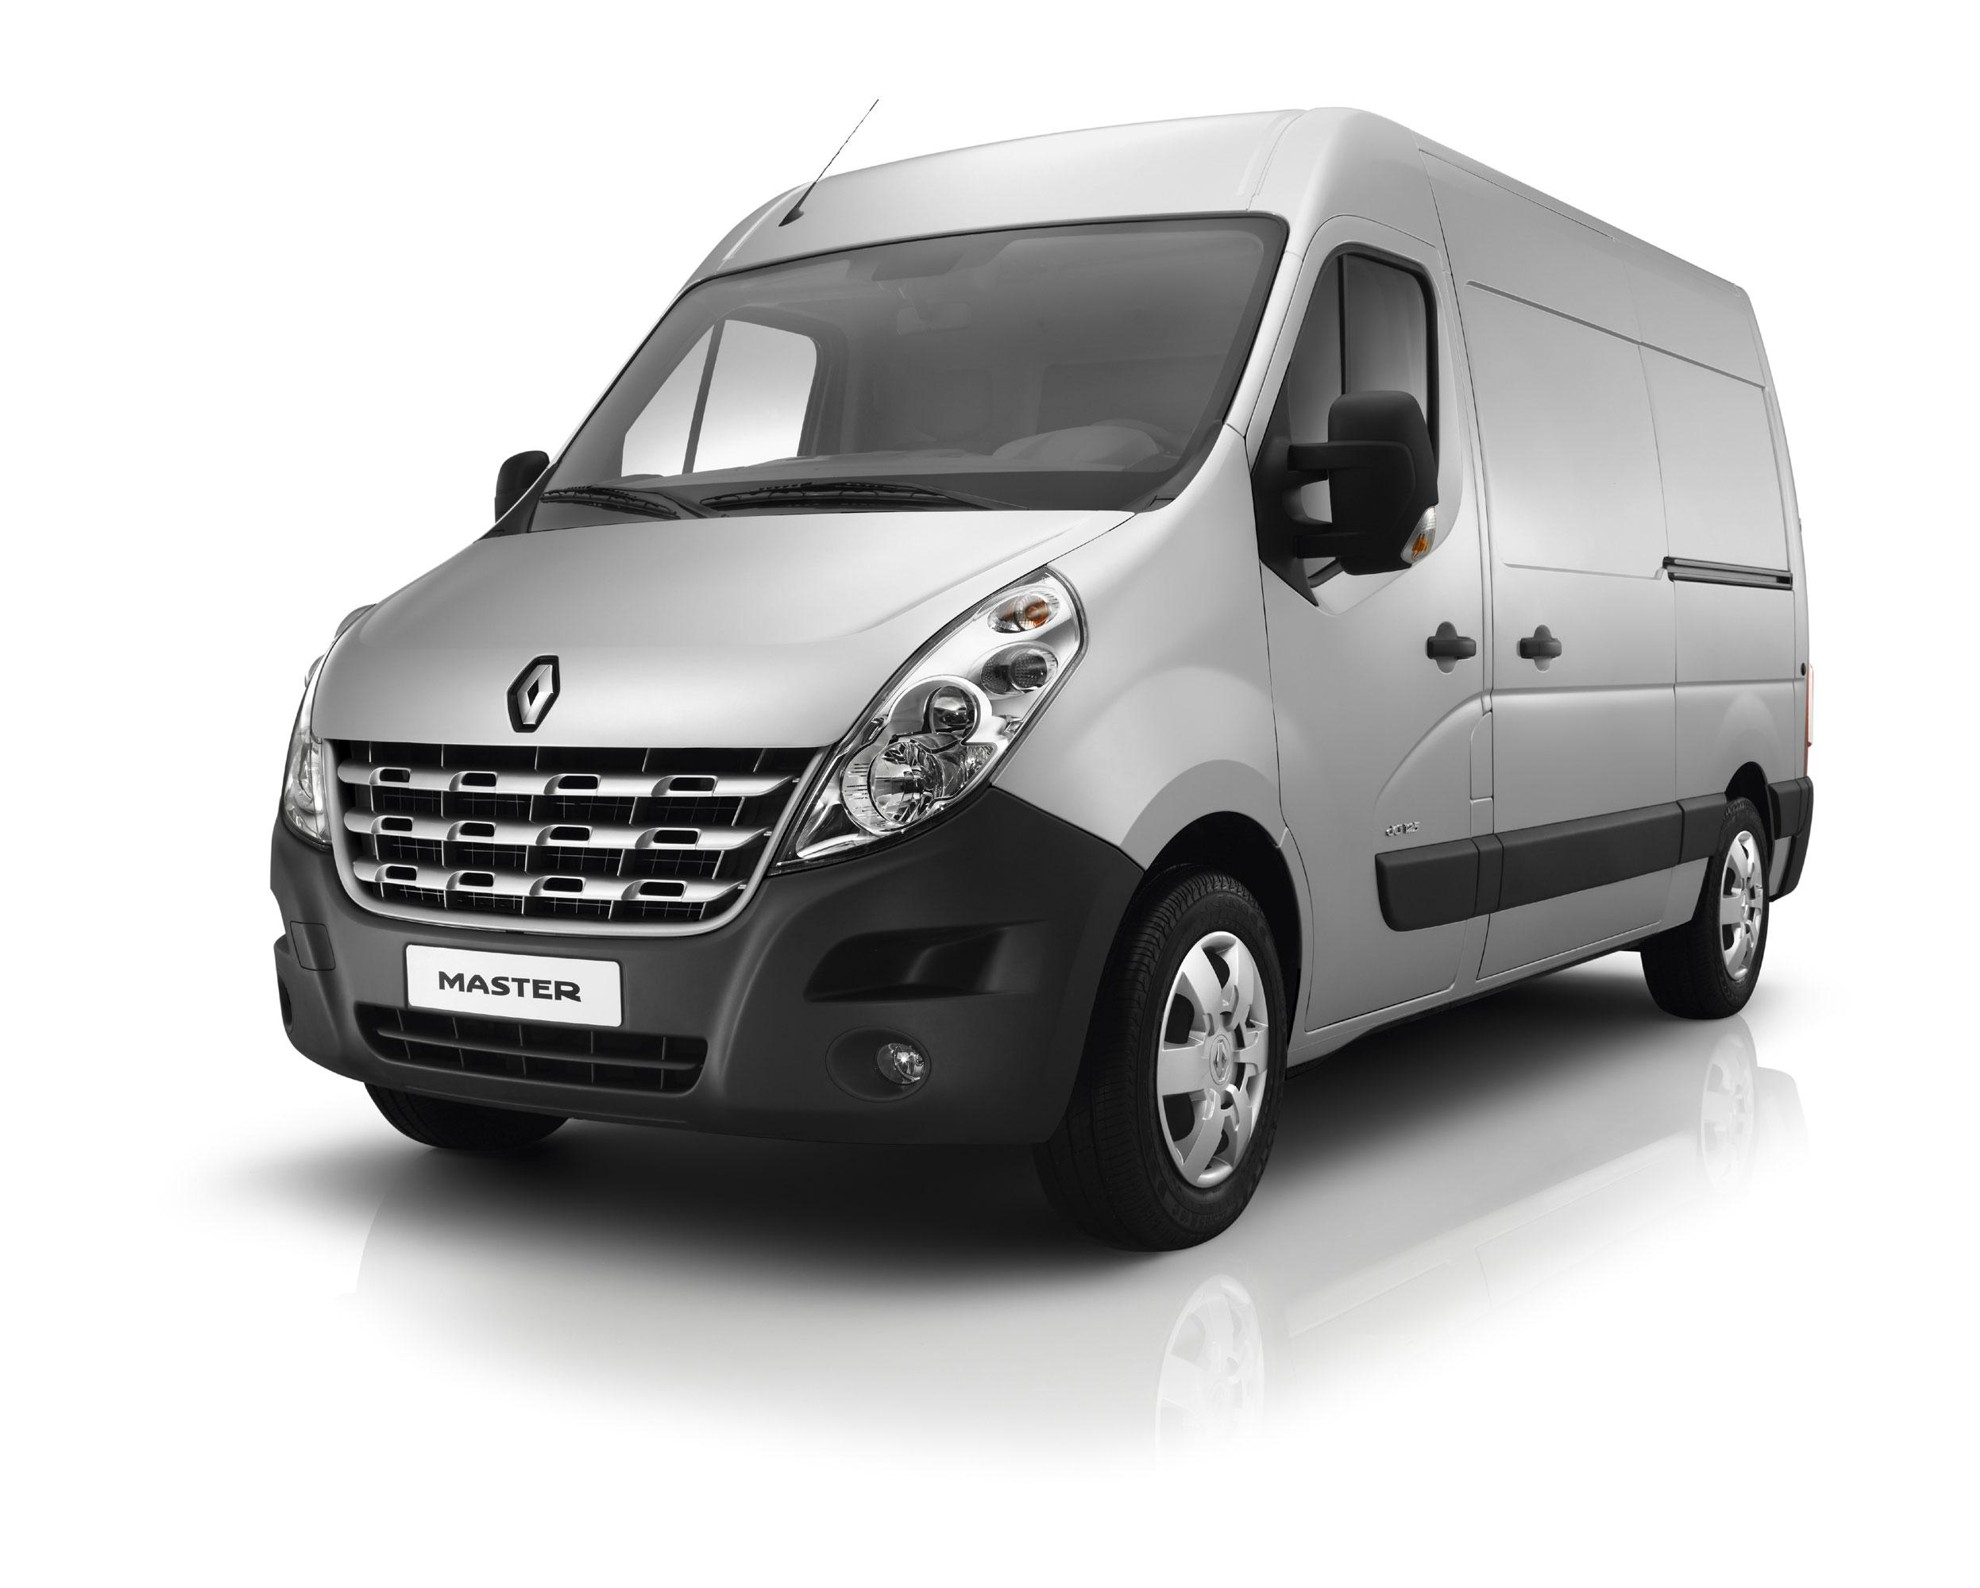 new renault master made in brazil south america. Black Bedroom Furniture Sets. Home Design Ideas